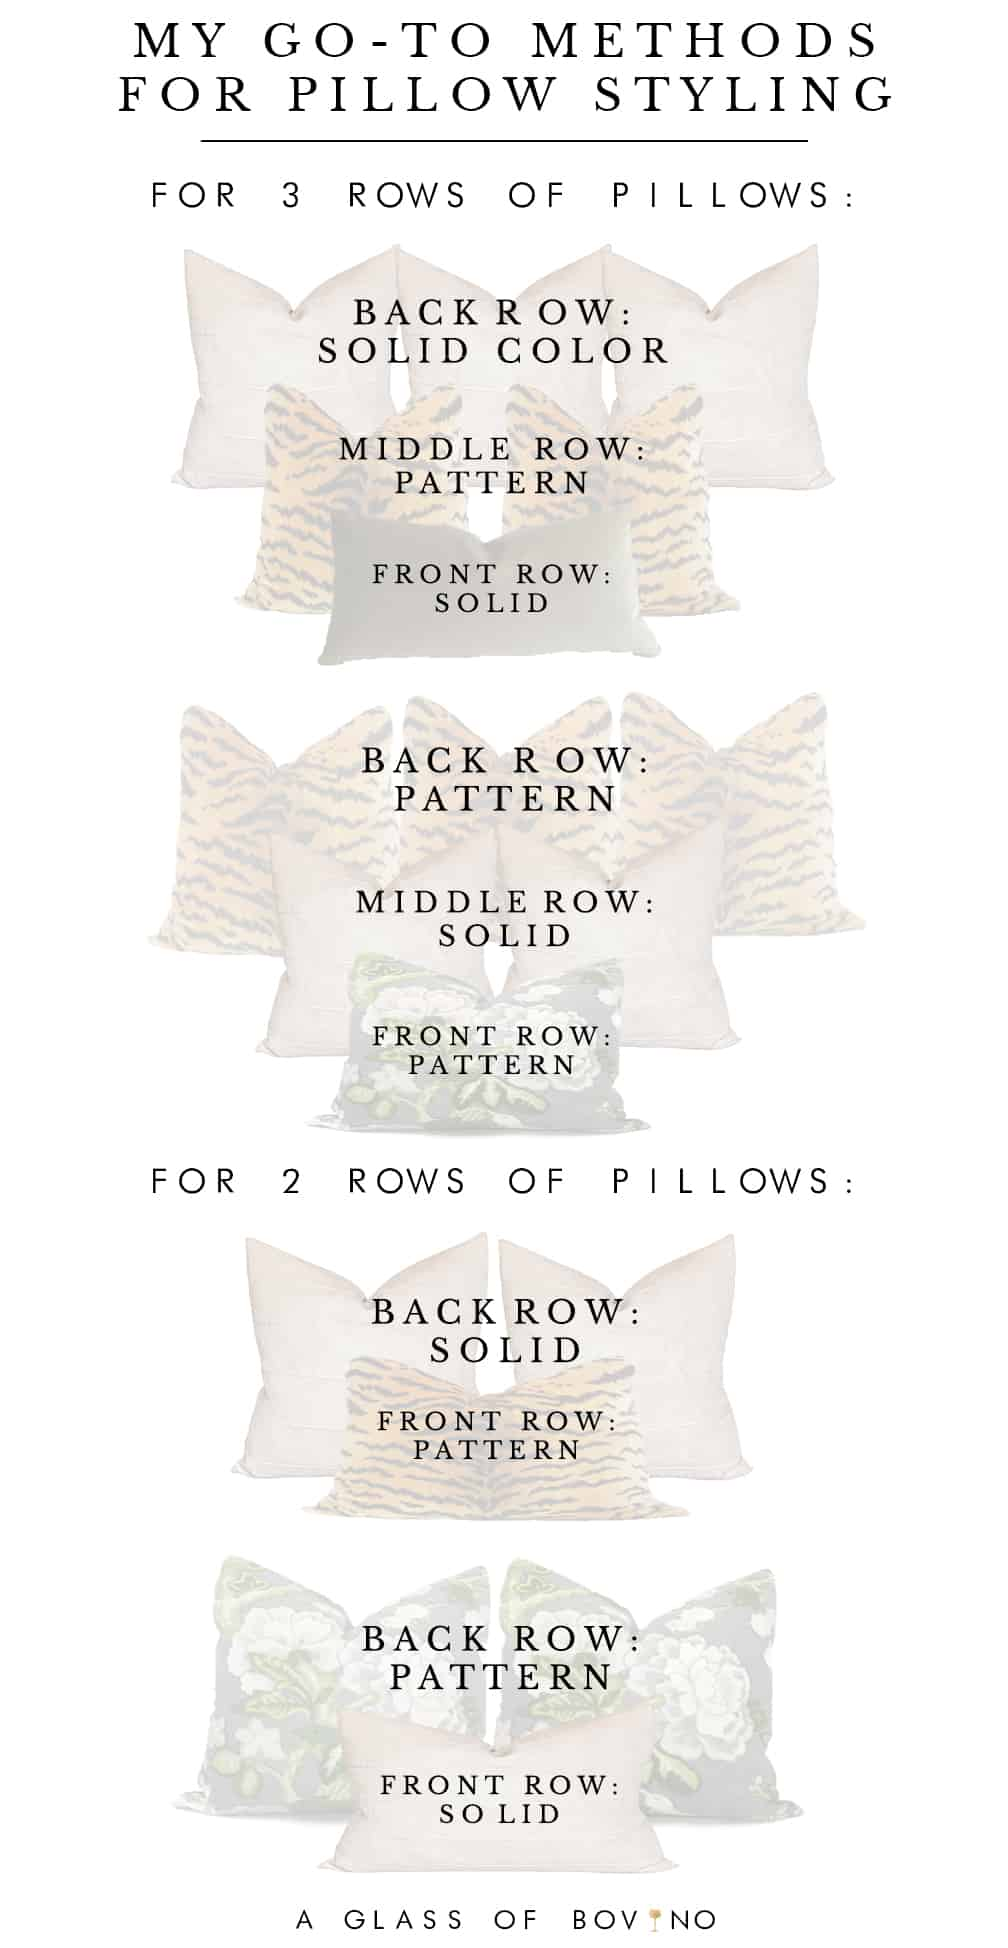 PILLOW-COMBINATION-STYLES